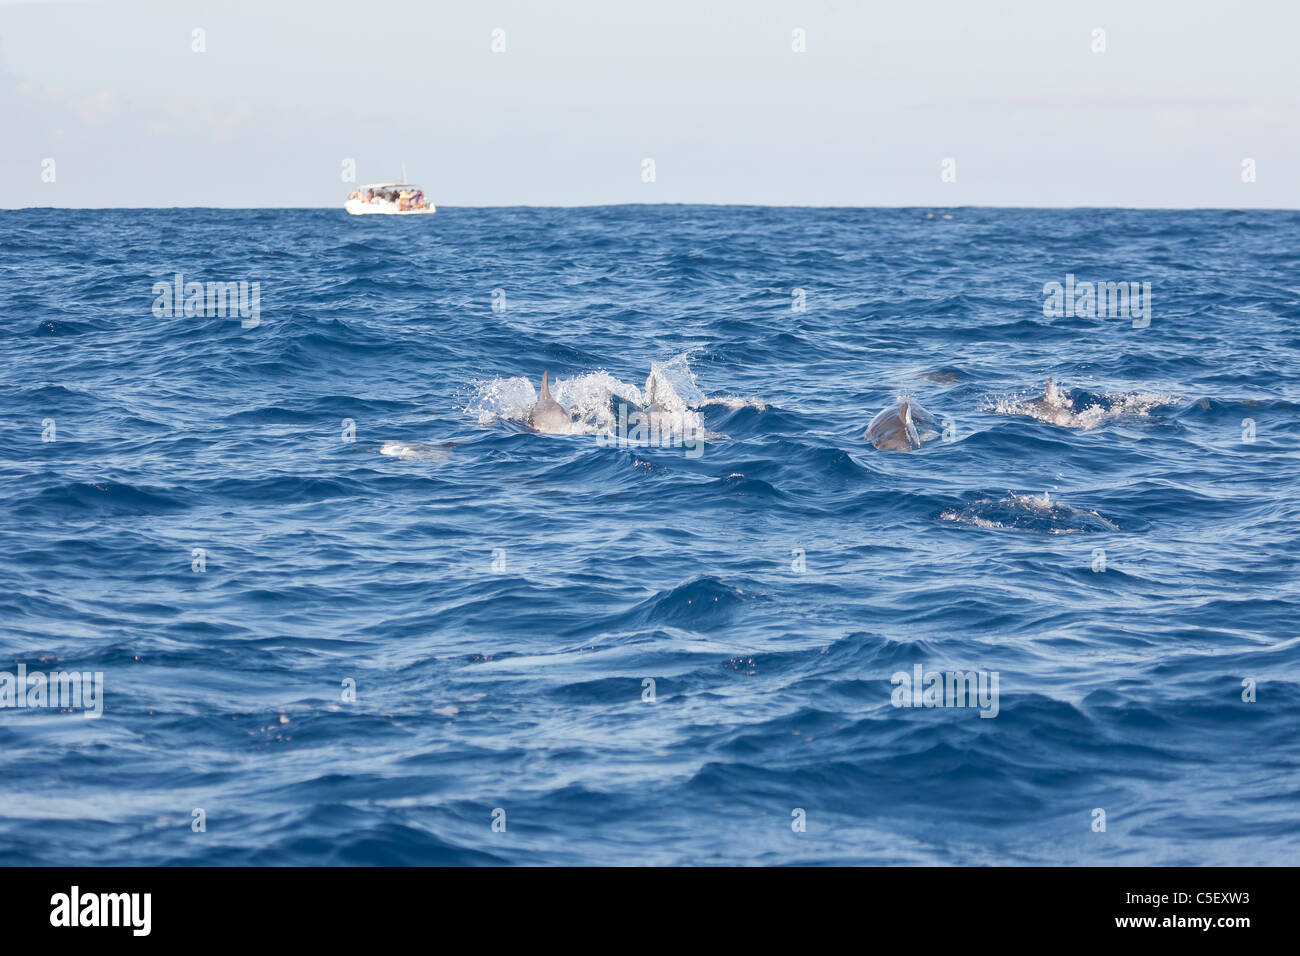 Ecotourists dolphin watching off Sao Miguel island in the Azores - Stock Image